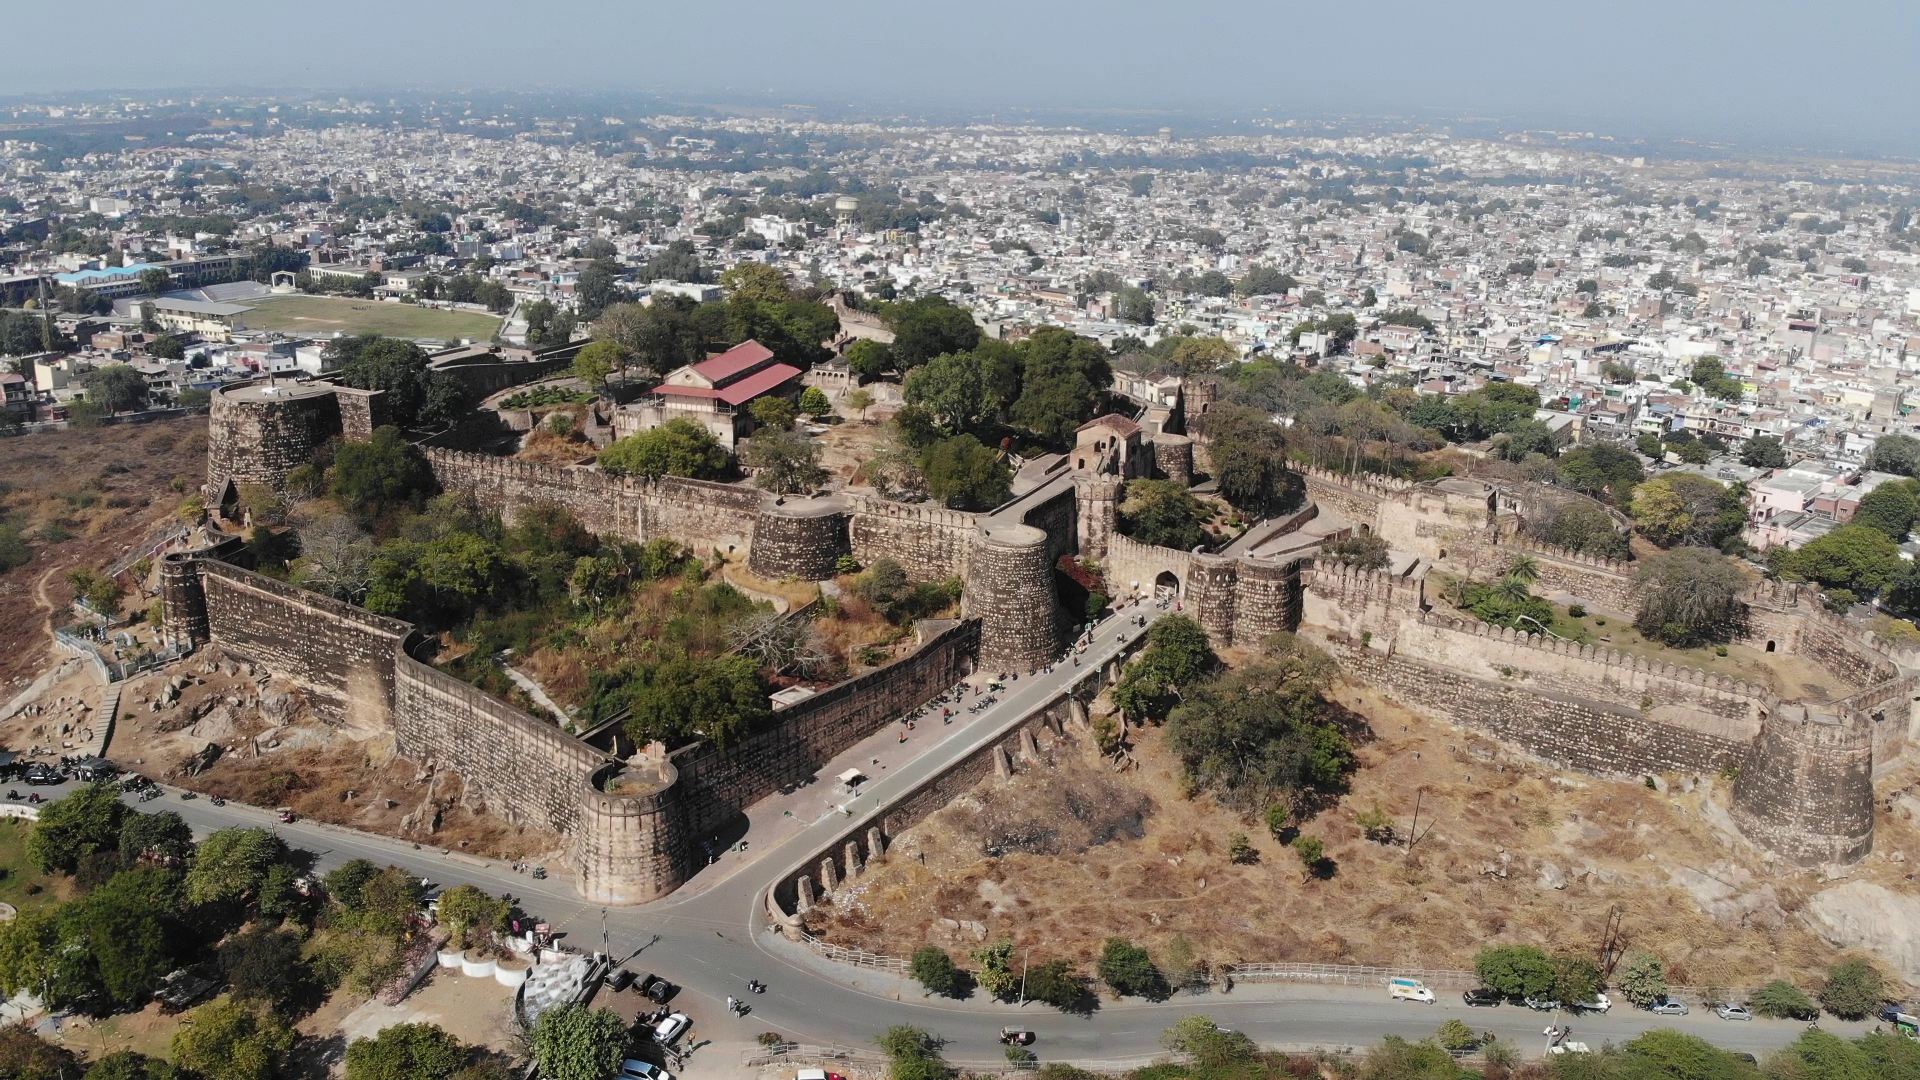 The Wonders of Jhansi and Beyond